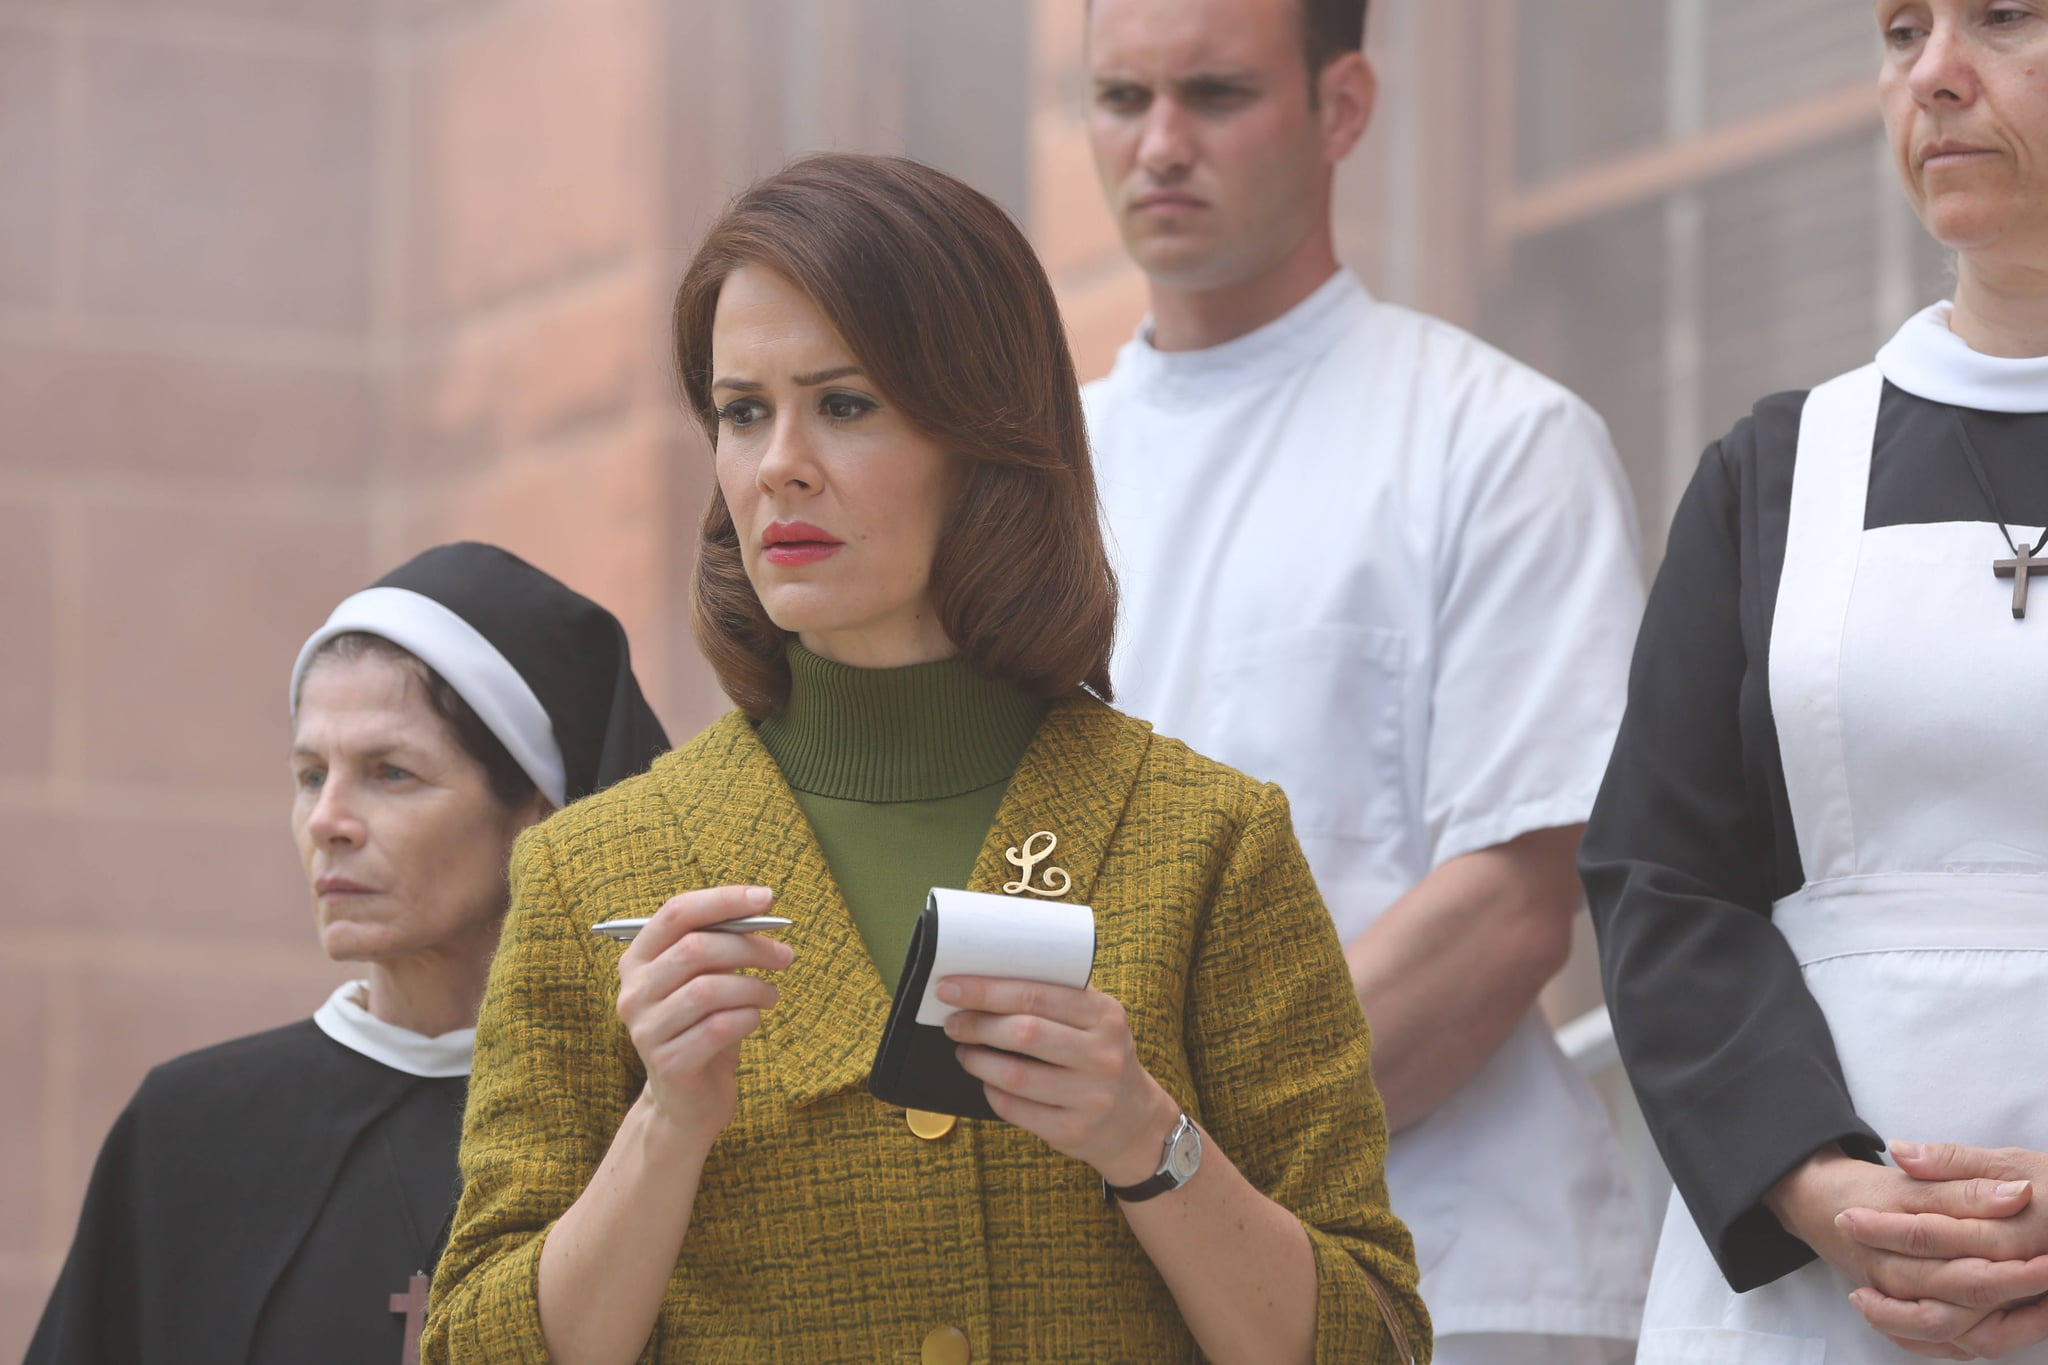 AMERICAN HORROR STORY: ASYLUM, Sarah Paulson in 'Welcome to Briarcliff' (Season 2, Episode 1, aired October 17, 2012), 2011-, ph: Michael Yarish/FX Networks/courtesy Everett Collection